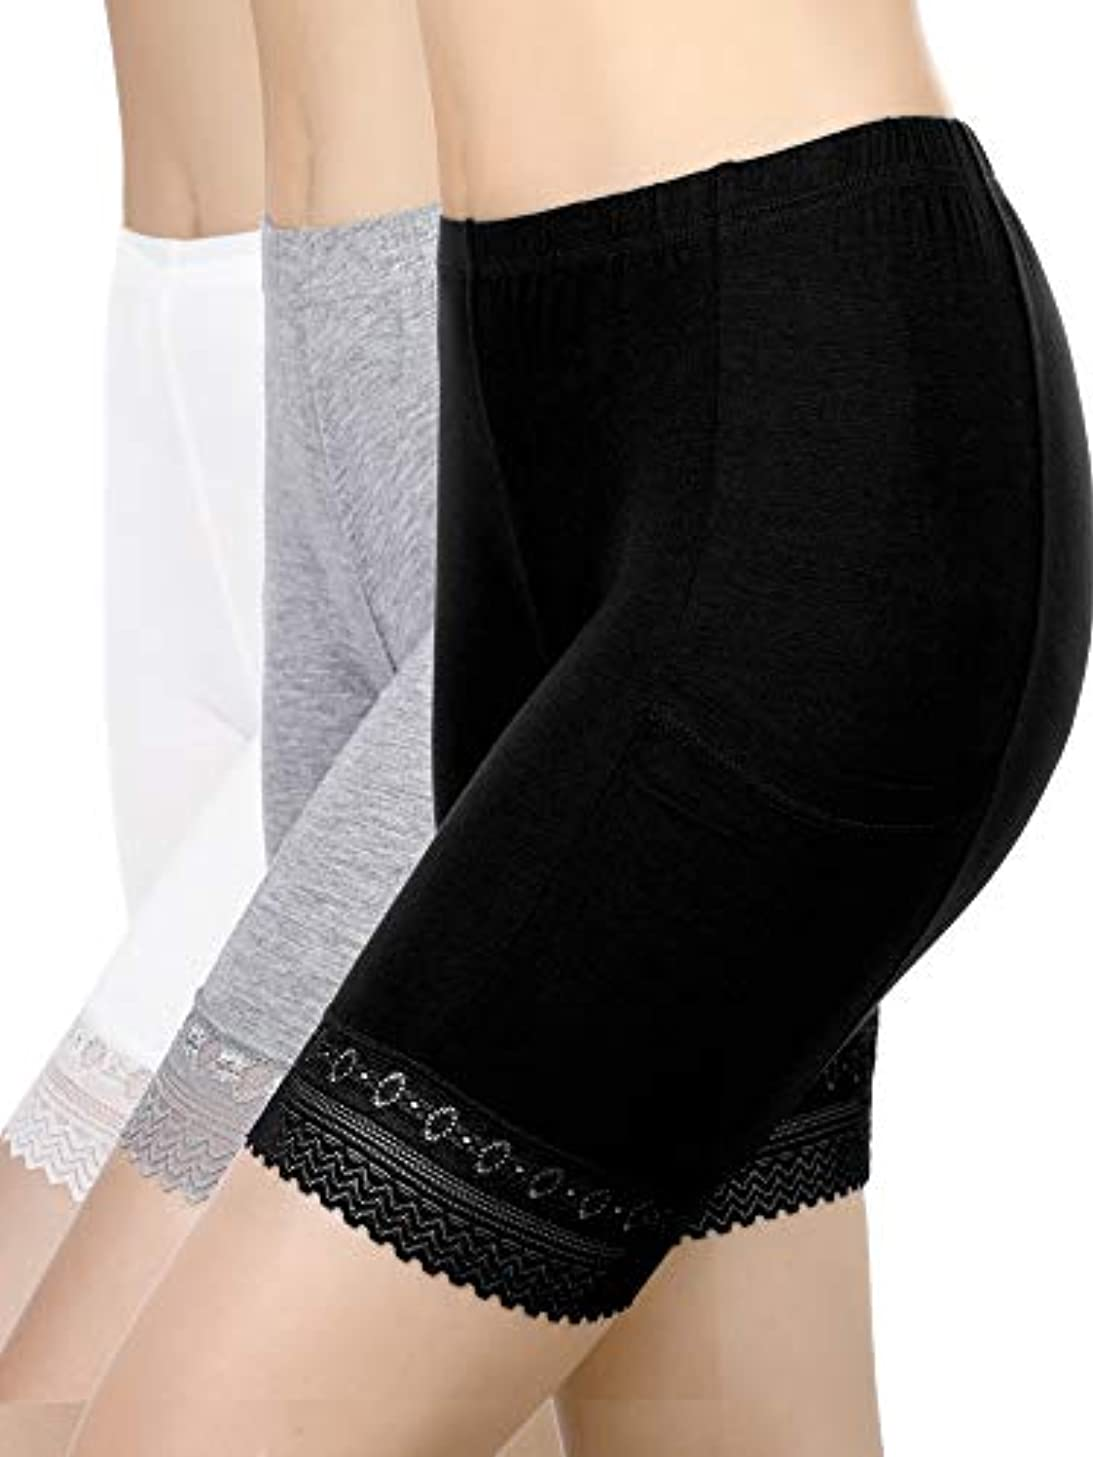 Blulu 3 Pieces Safety Pants Lace Yoga Shorts Stretch Underwear with Pockets for Women Girls Wearing Supplies